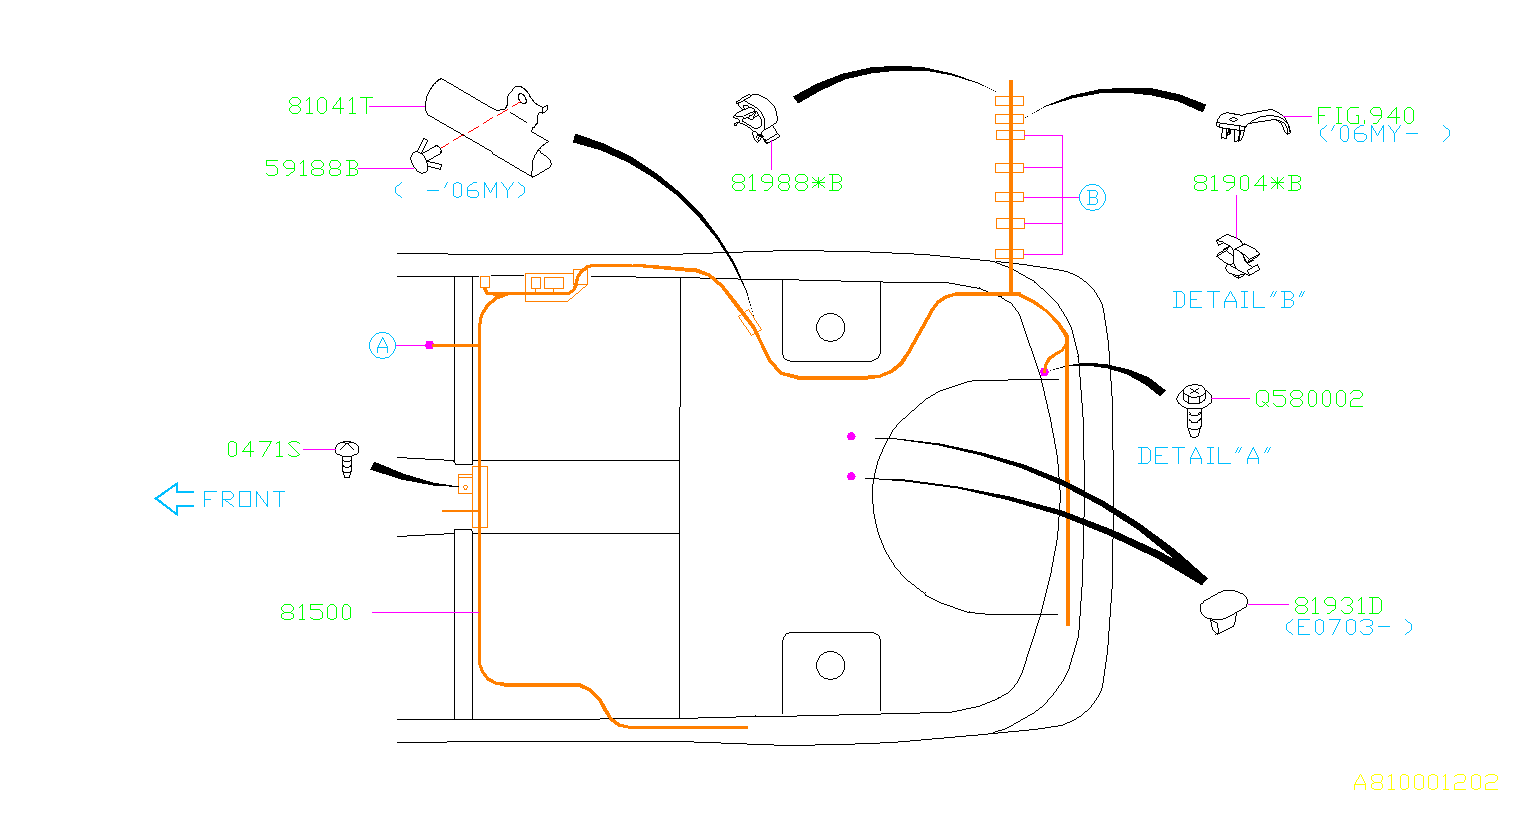 Subaru Forester Wiring Diagram And Cable Routing Circuit Wiring